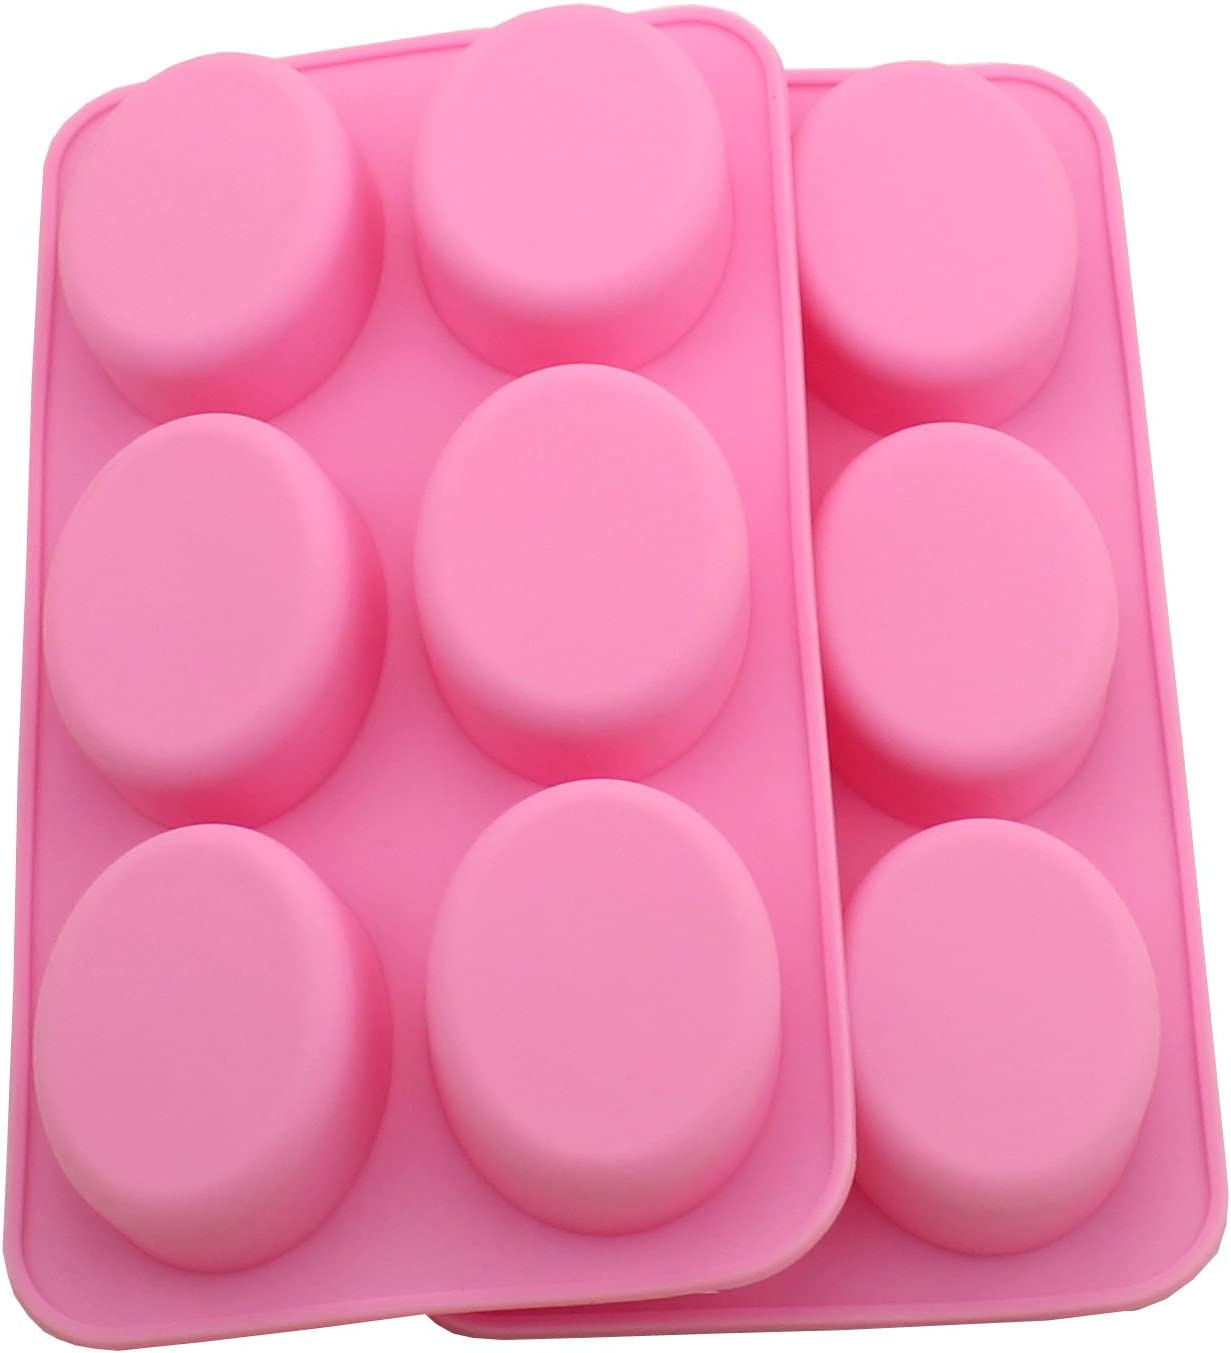 WARMBUY Oval Silicone National products Mold for DIY Pour Melt Homemade Direct store Soap and